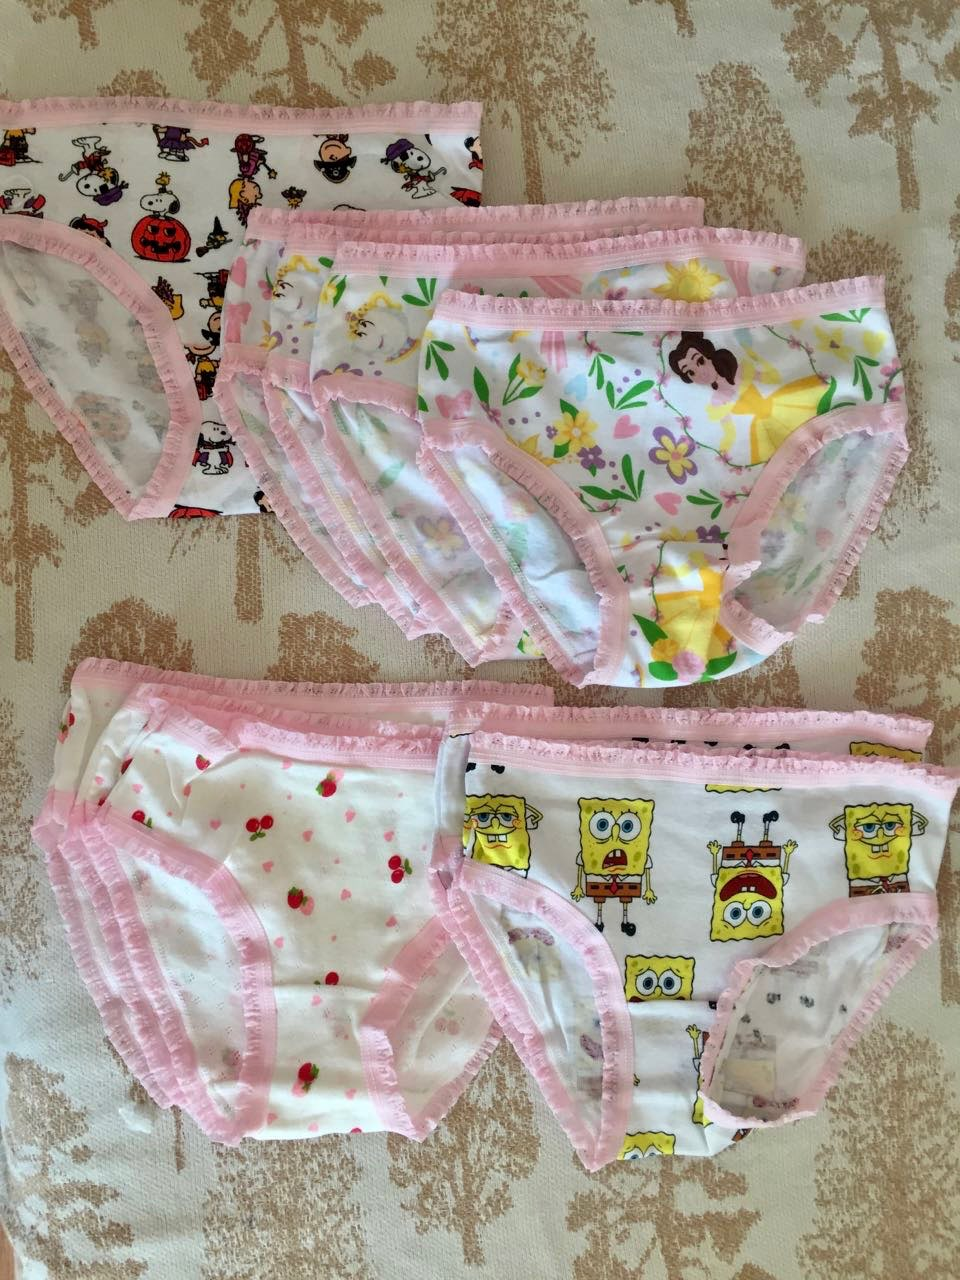 Wholesale(10pcs/lot) Cartoon Design Underwear For Children Kid, 100% Cotton Girls Shorts Underpants Knickers, Free shipping photo review